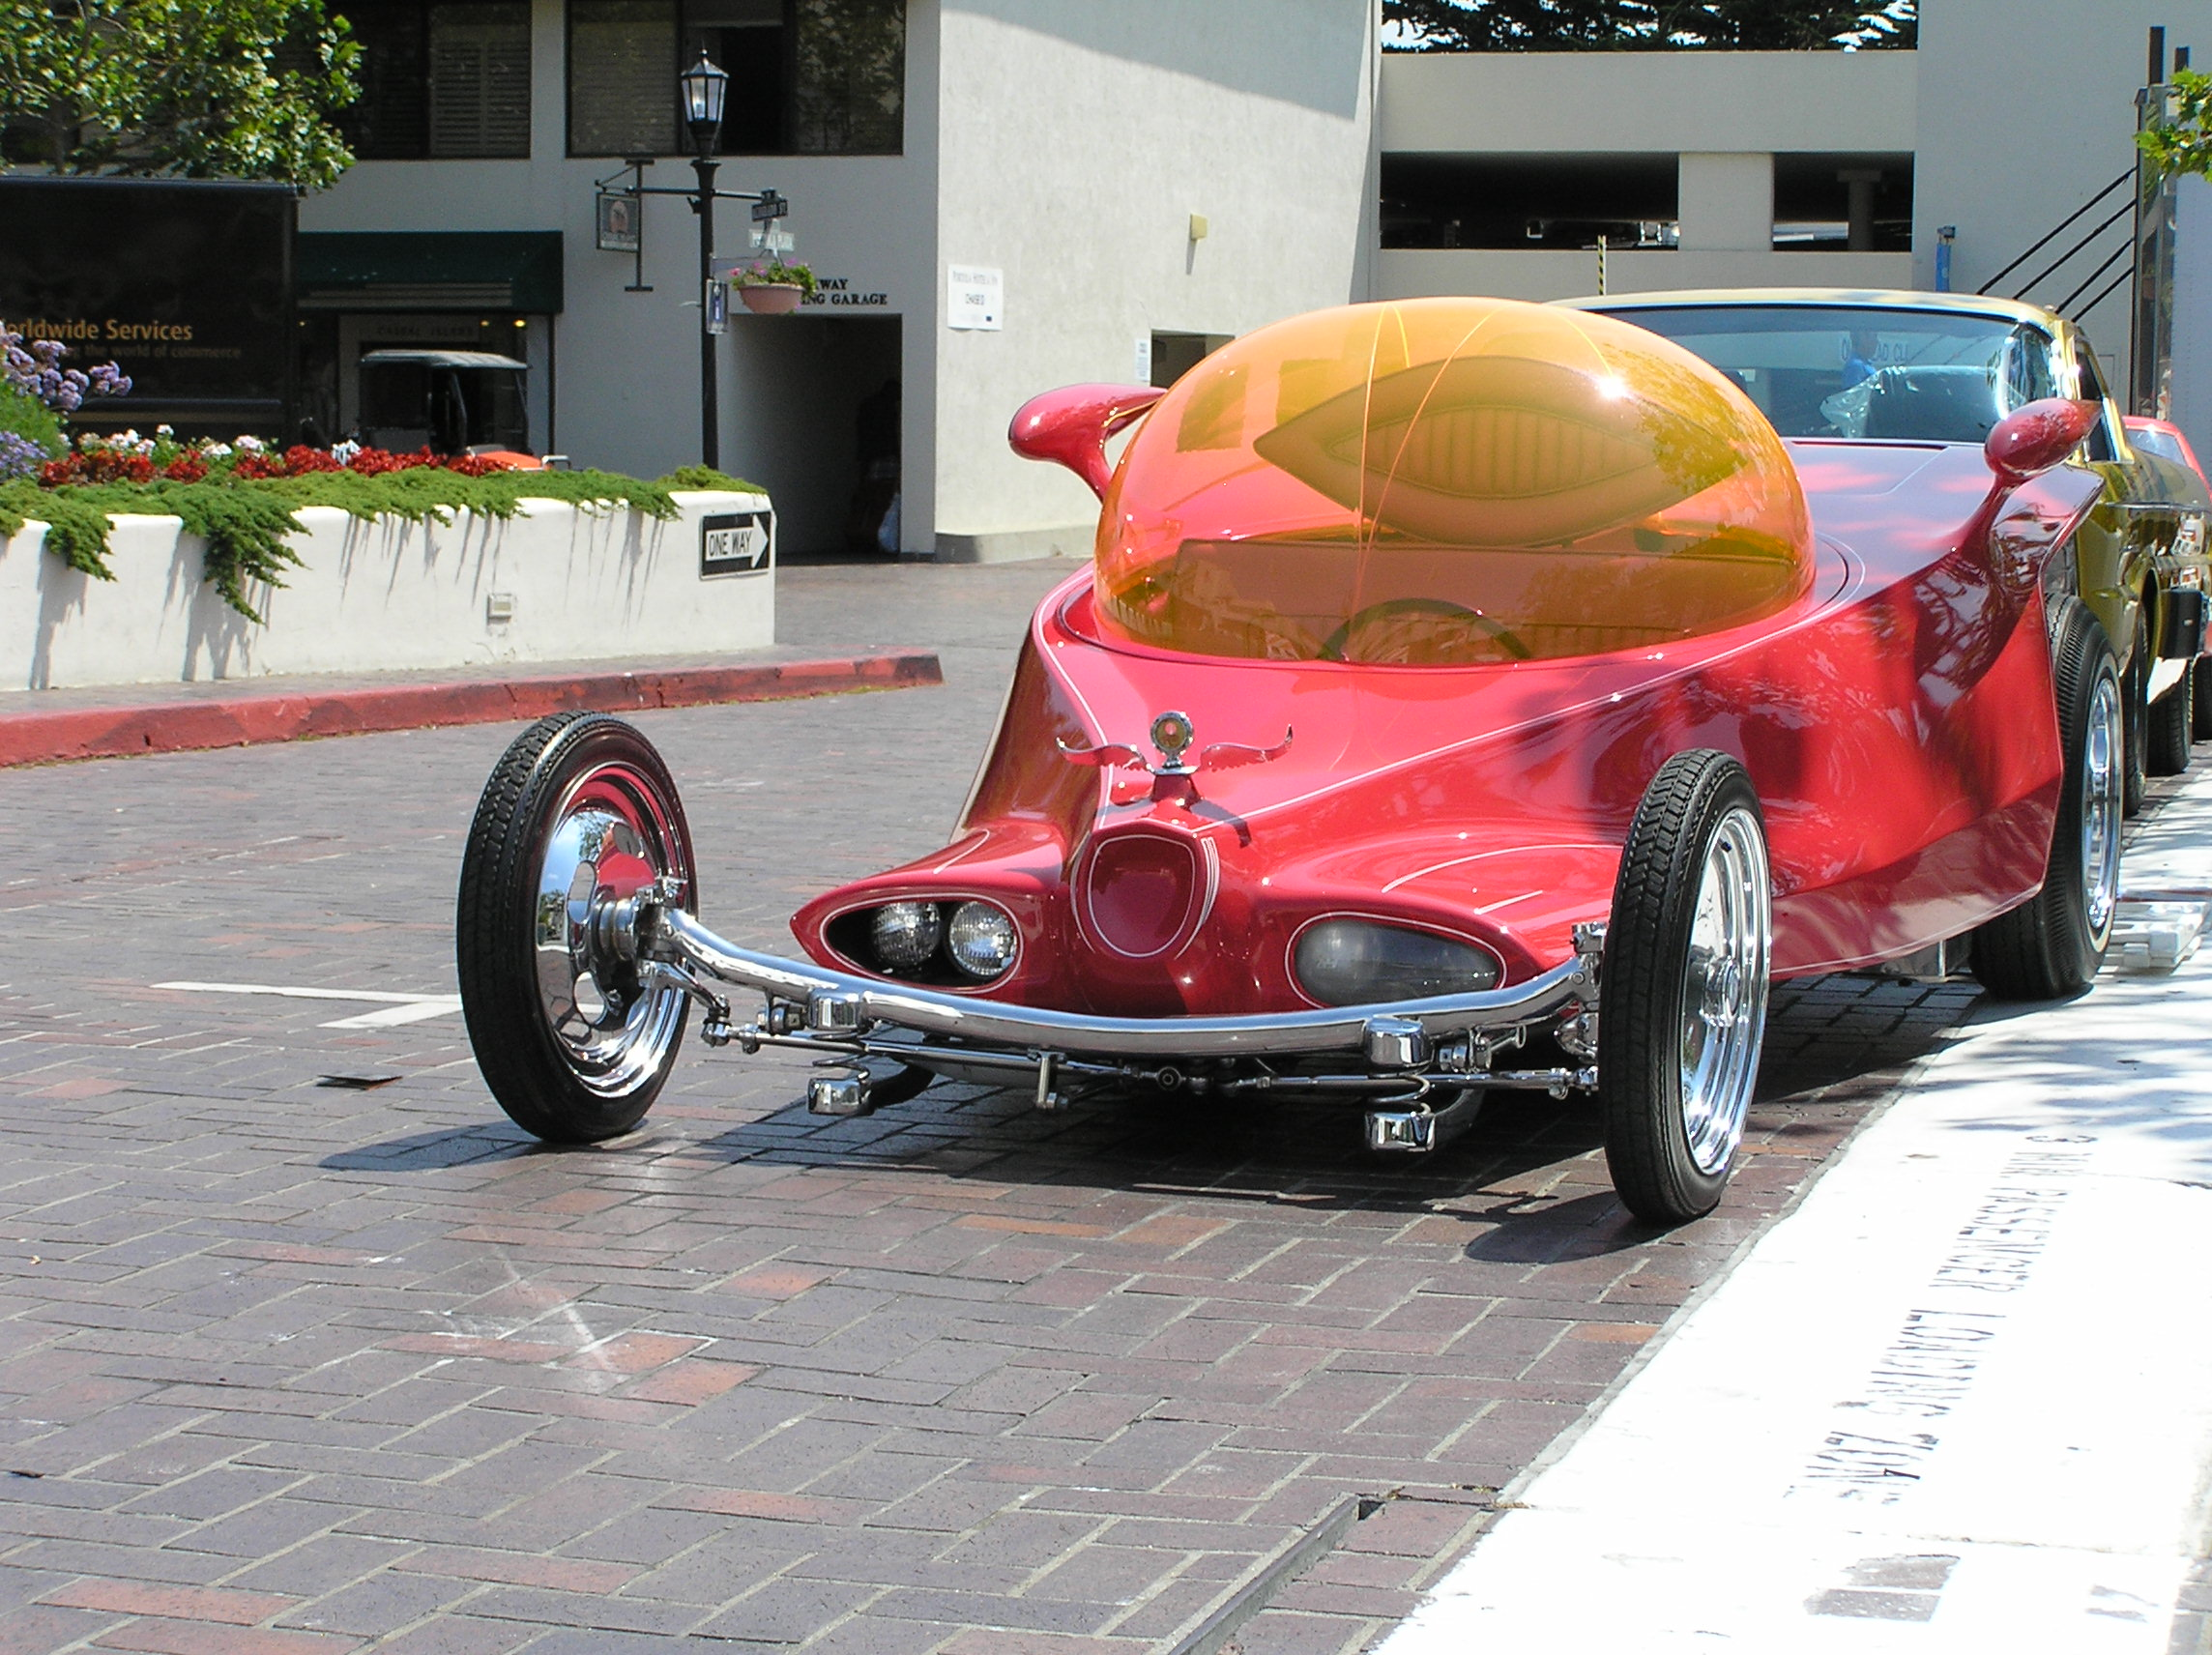 File:Roth - Classic and Custom Car auction, Monterey, 2009, 4 of 5 ...